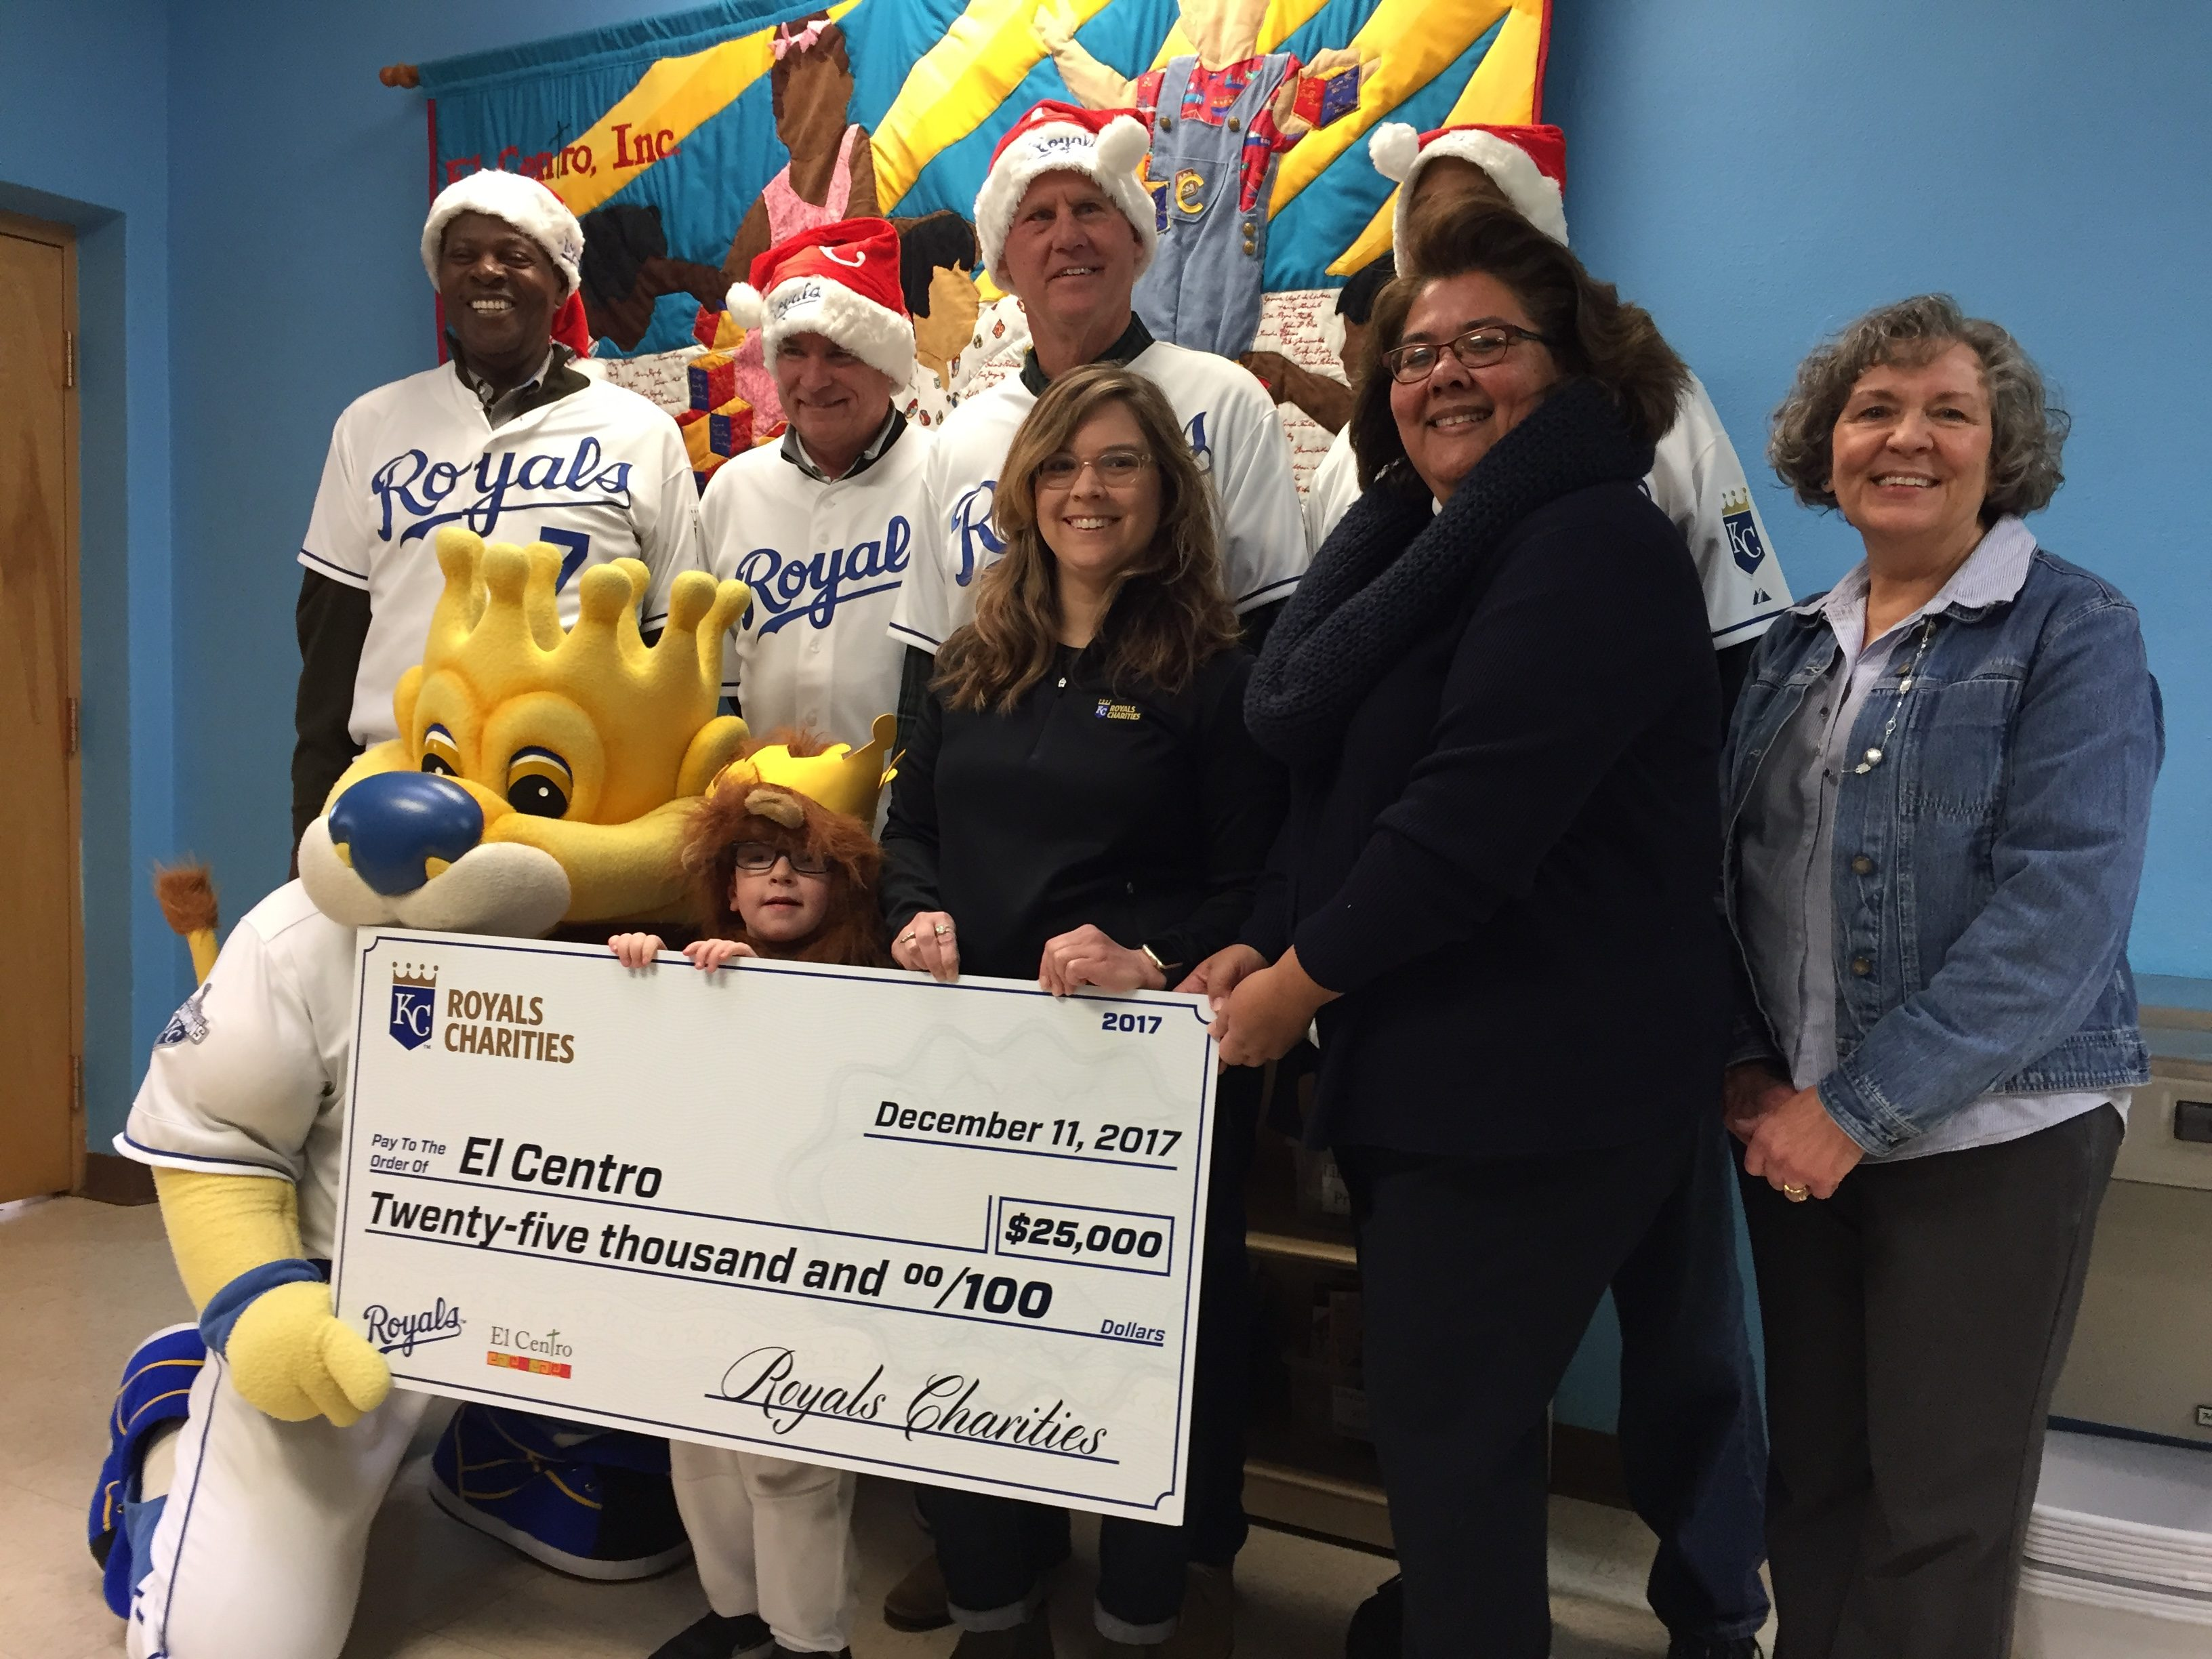 Royals Charities donated $25,000 to the Academy for Children